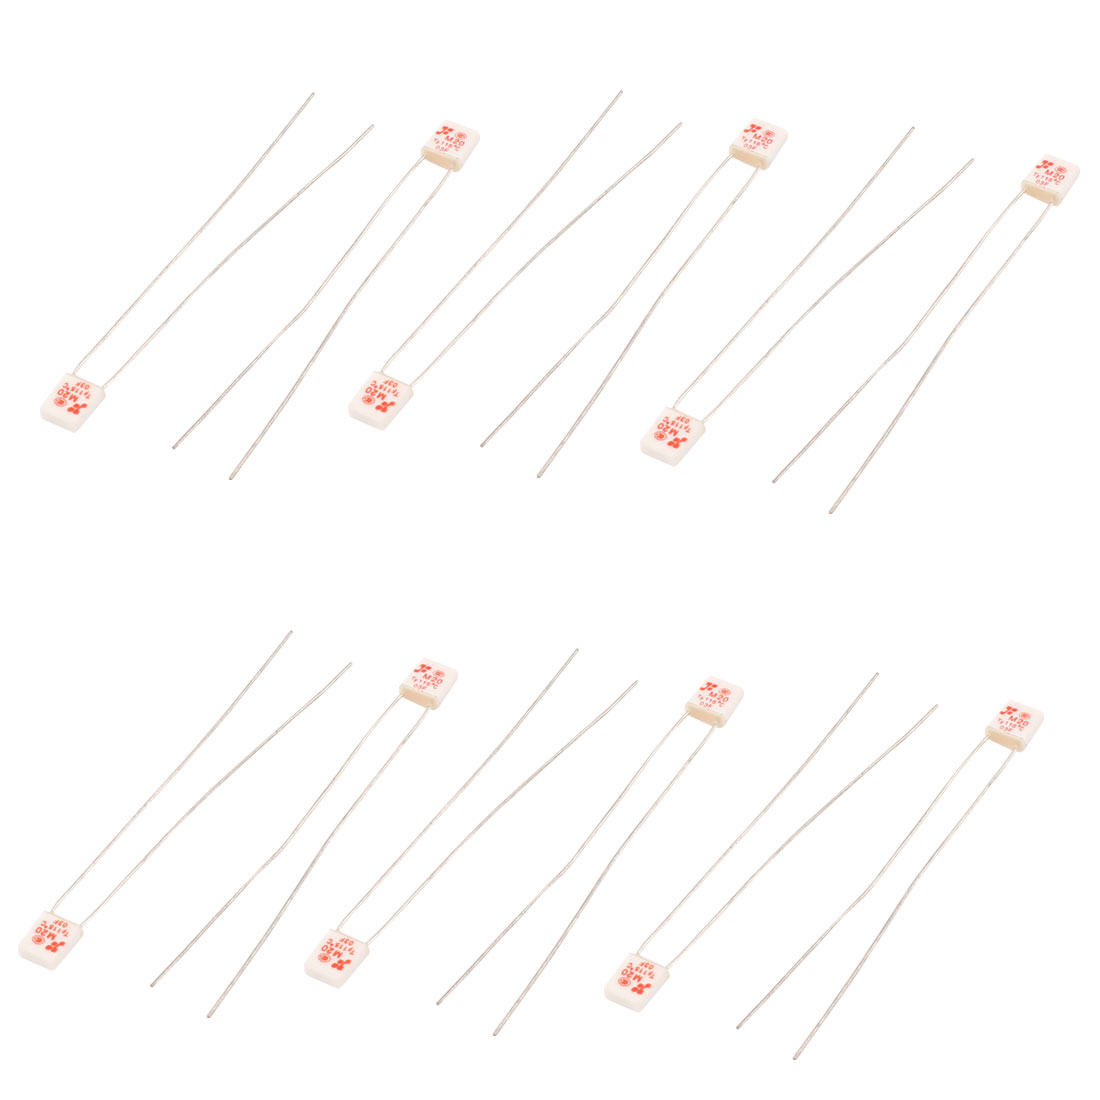 Uxcell 10 Pcs Ac 250v 2a 115 Celsius Square Circuit Cut Off 2 Pin Temperature Thermal Fuse In